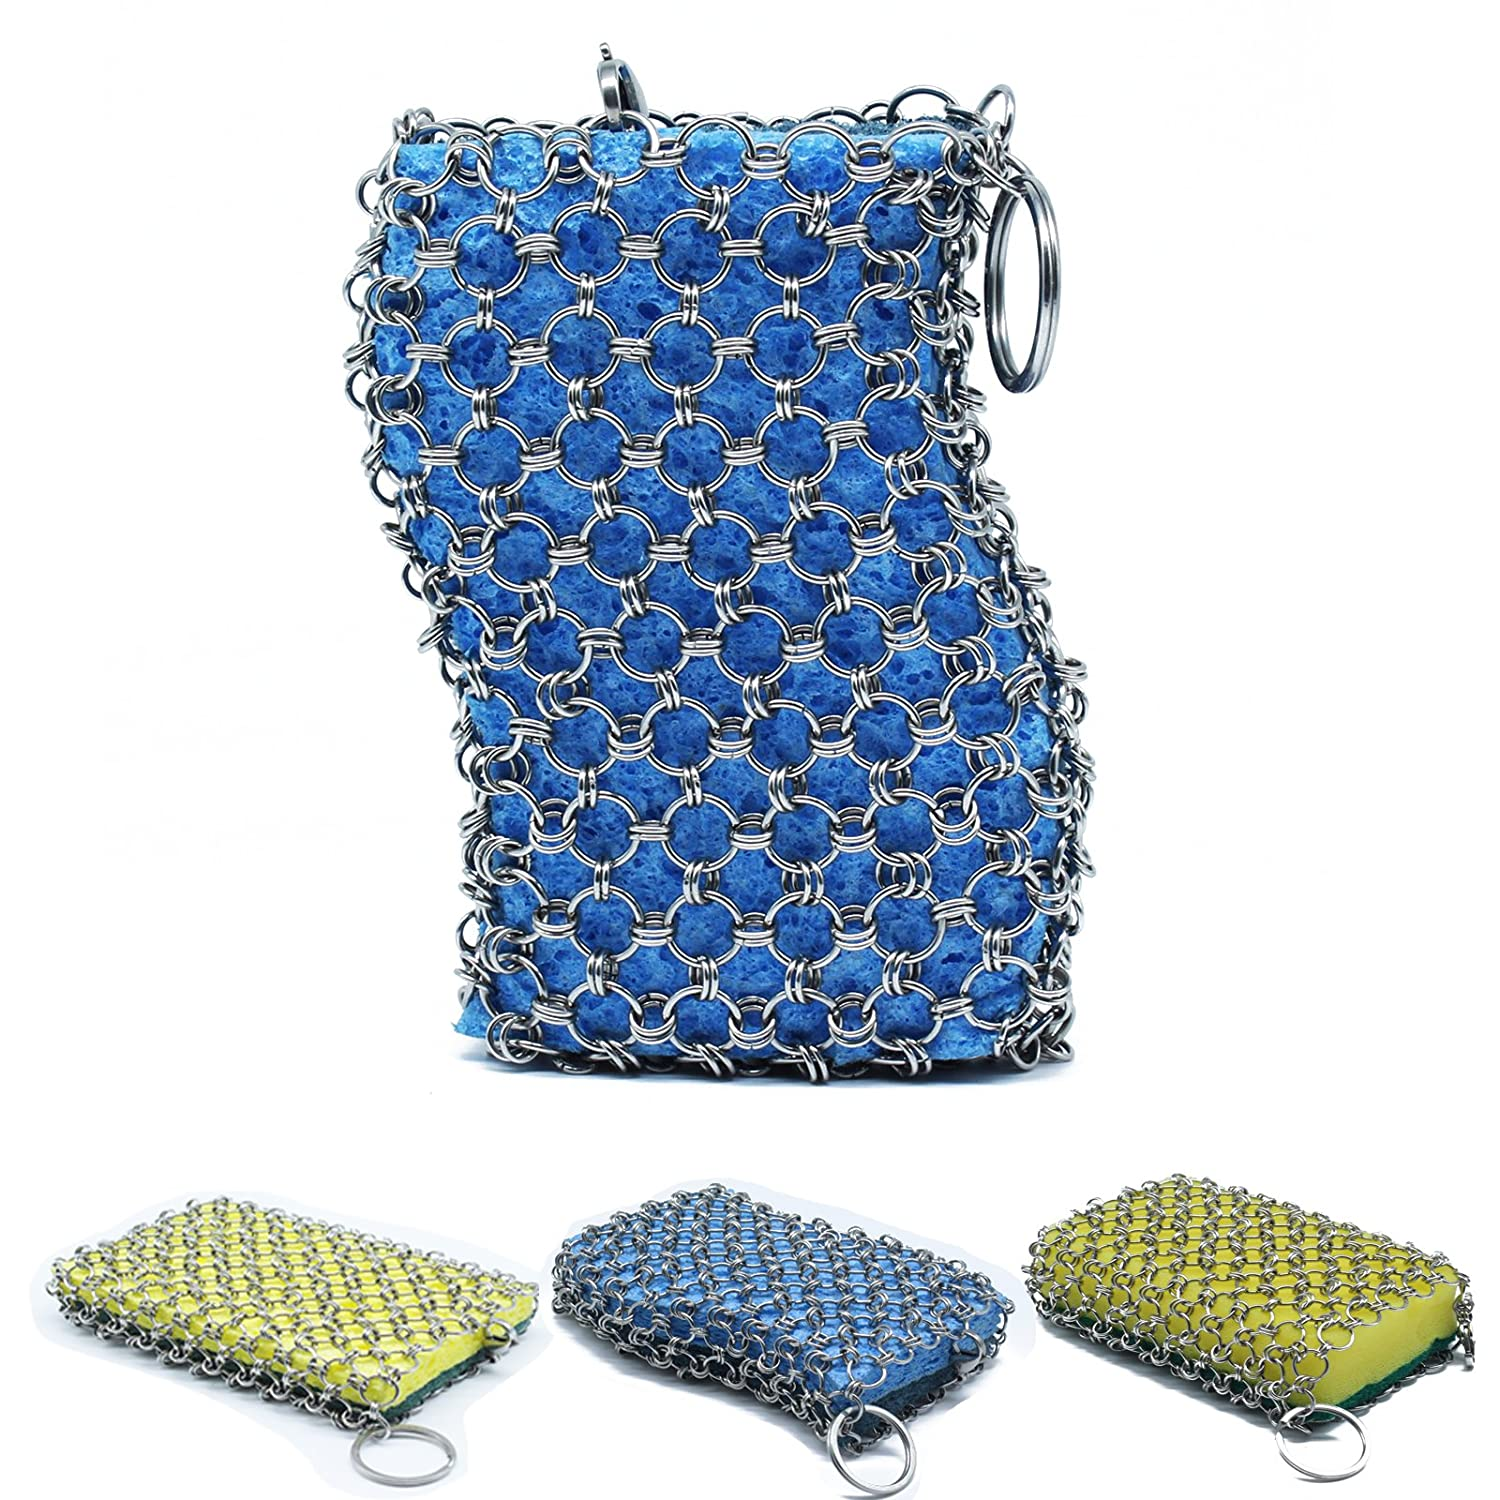 The Original good grips cast iron cleaner with wood pulp sponge, faster Chainmail Scrubber for cast iron skillet,cookware,pan,counters, sinks- oil free,pan Scraper for Home and Camping (blue) REEBENT